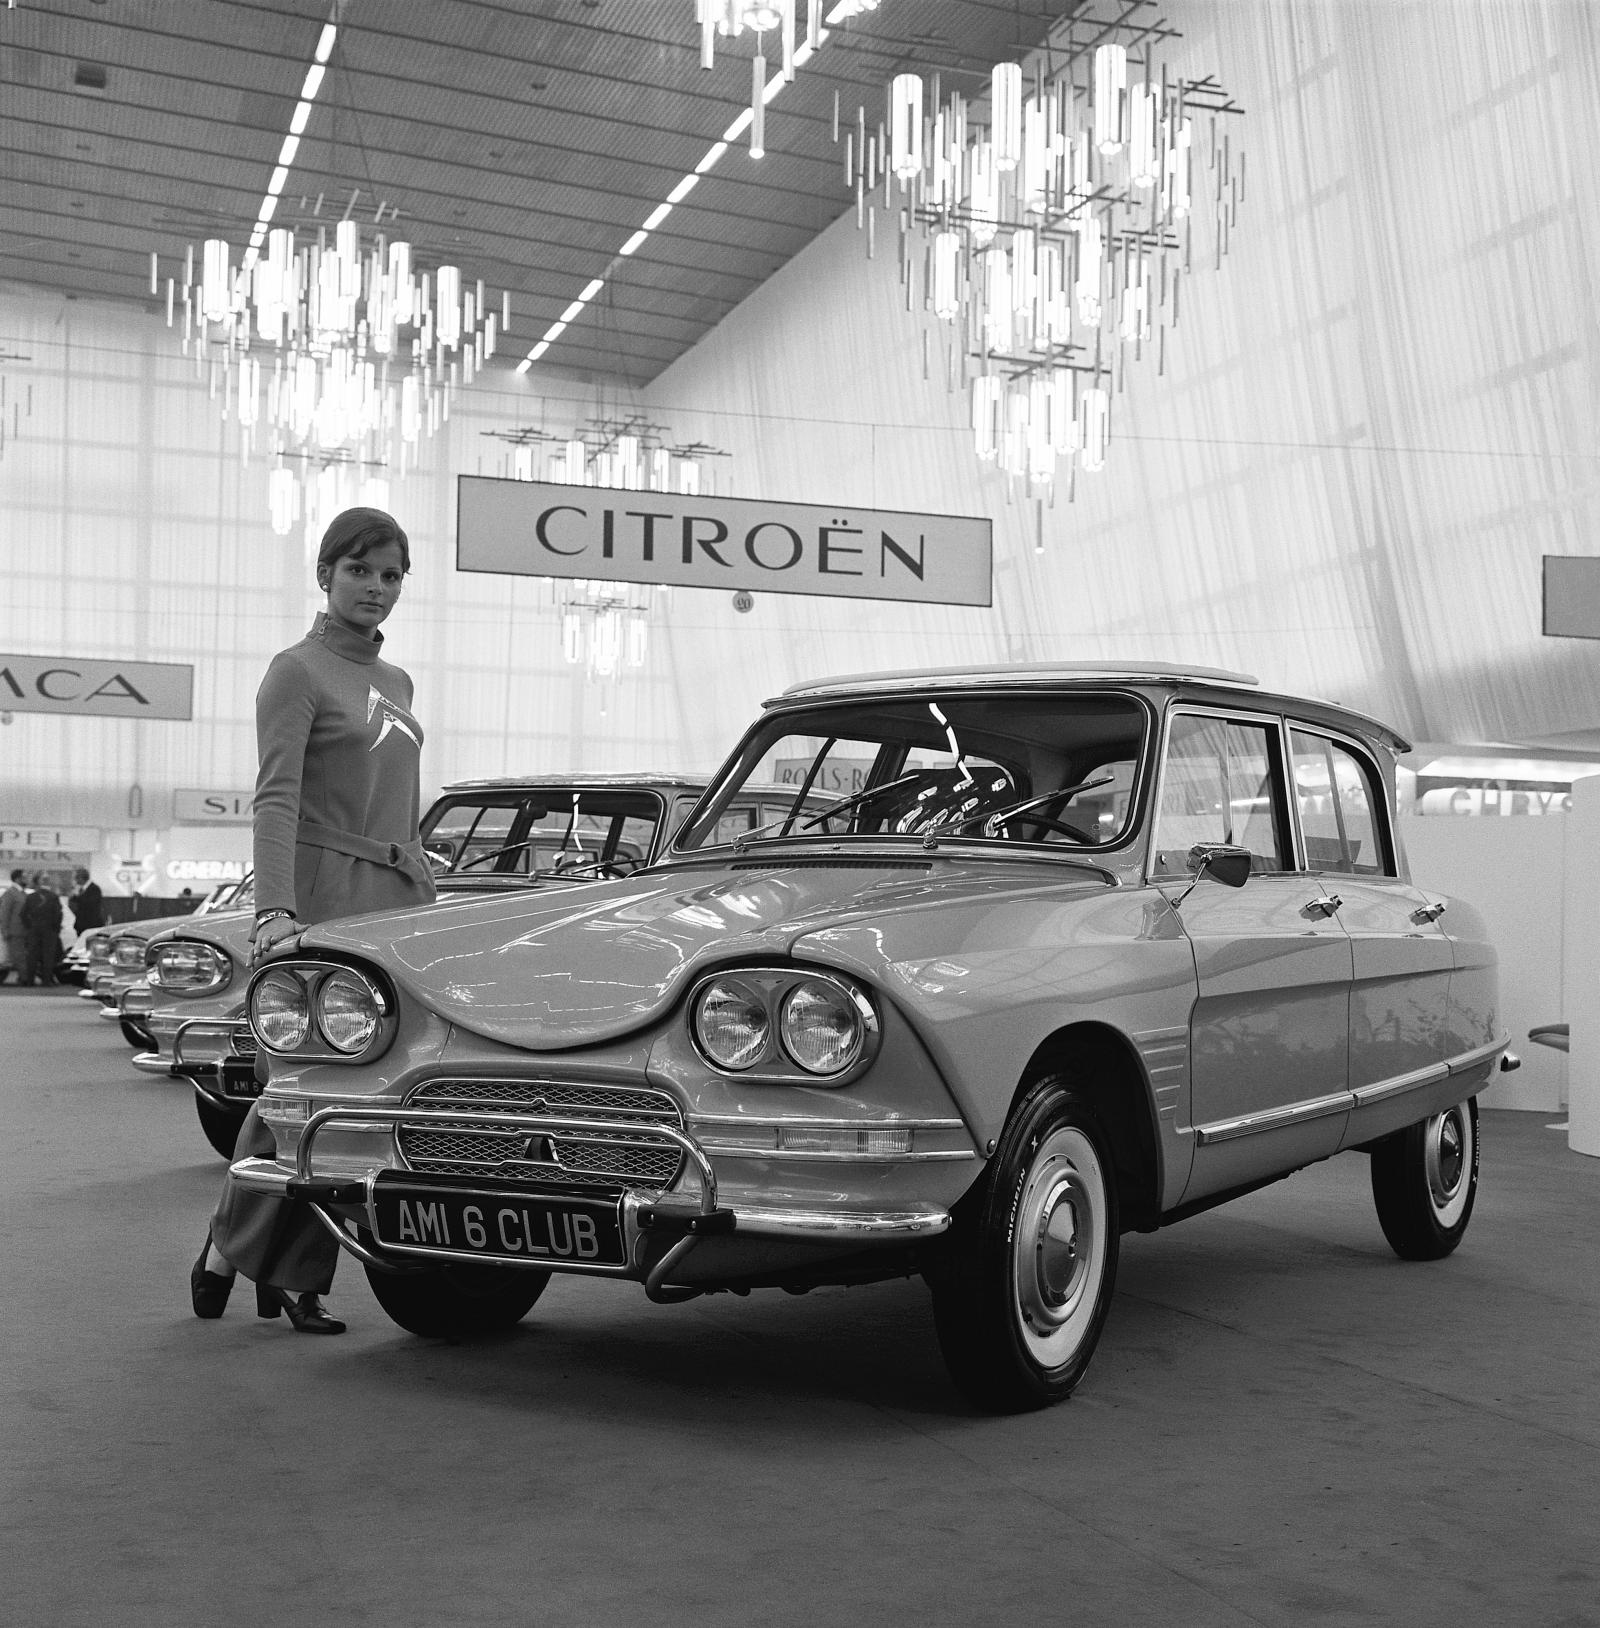 Salon de l'Automobile -autonäyttely 1966, AMI 6 Klubi